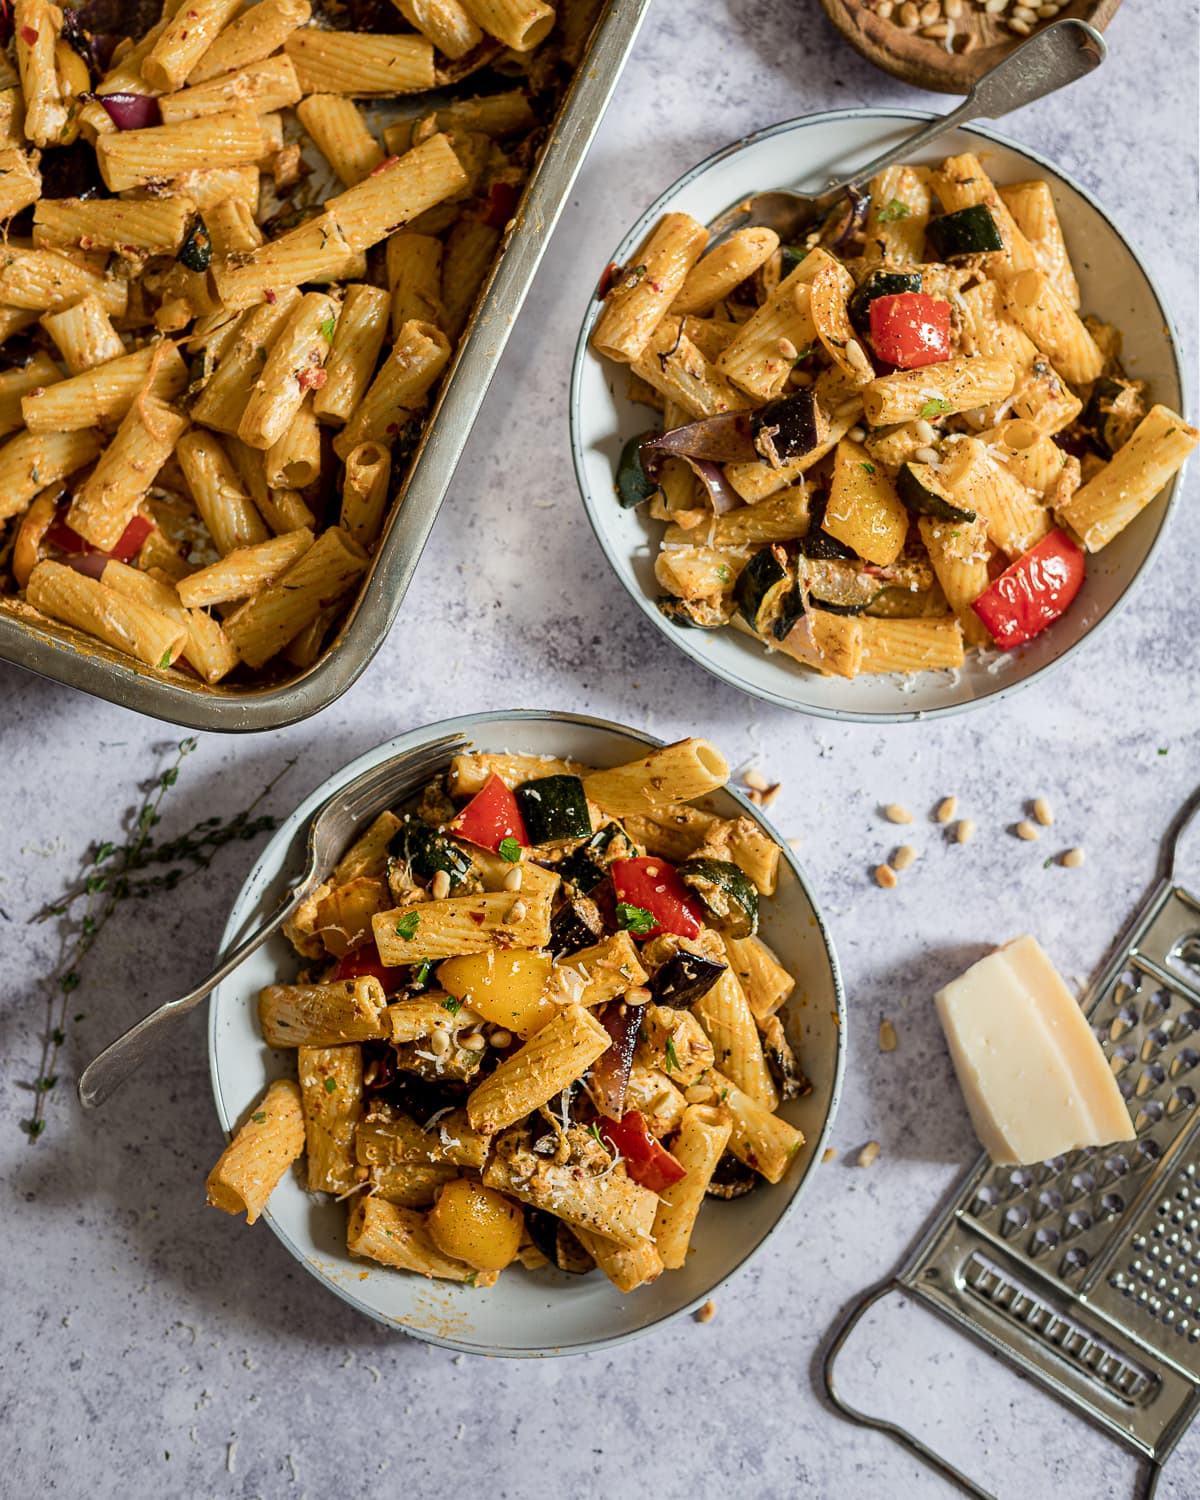 Pasta with courgette, aubergine, peppers, inion and pine nuts